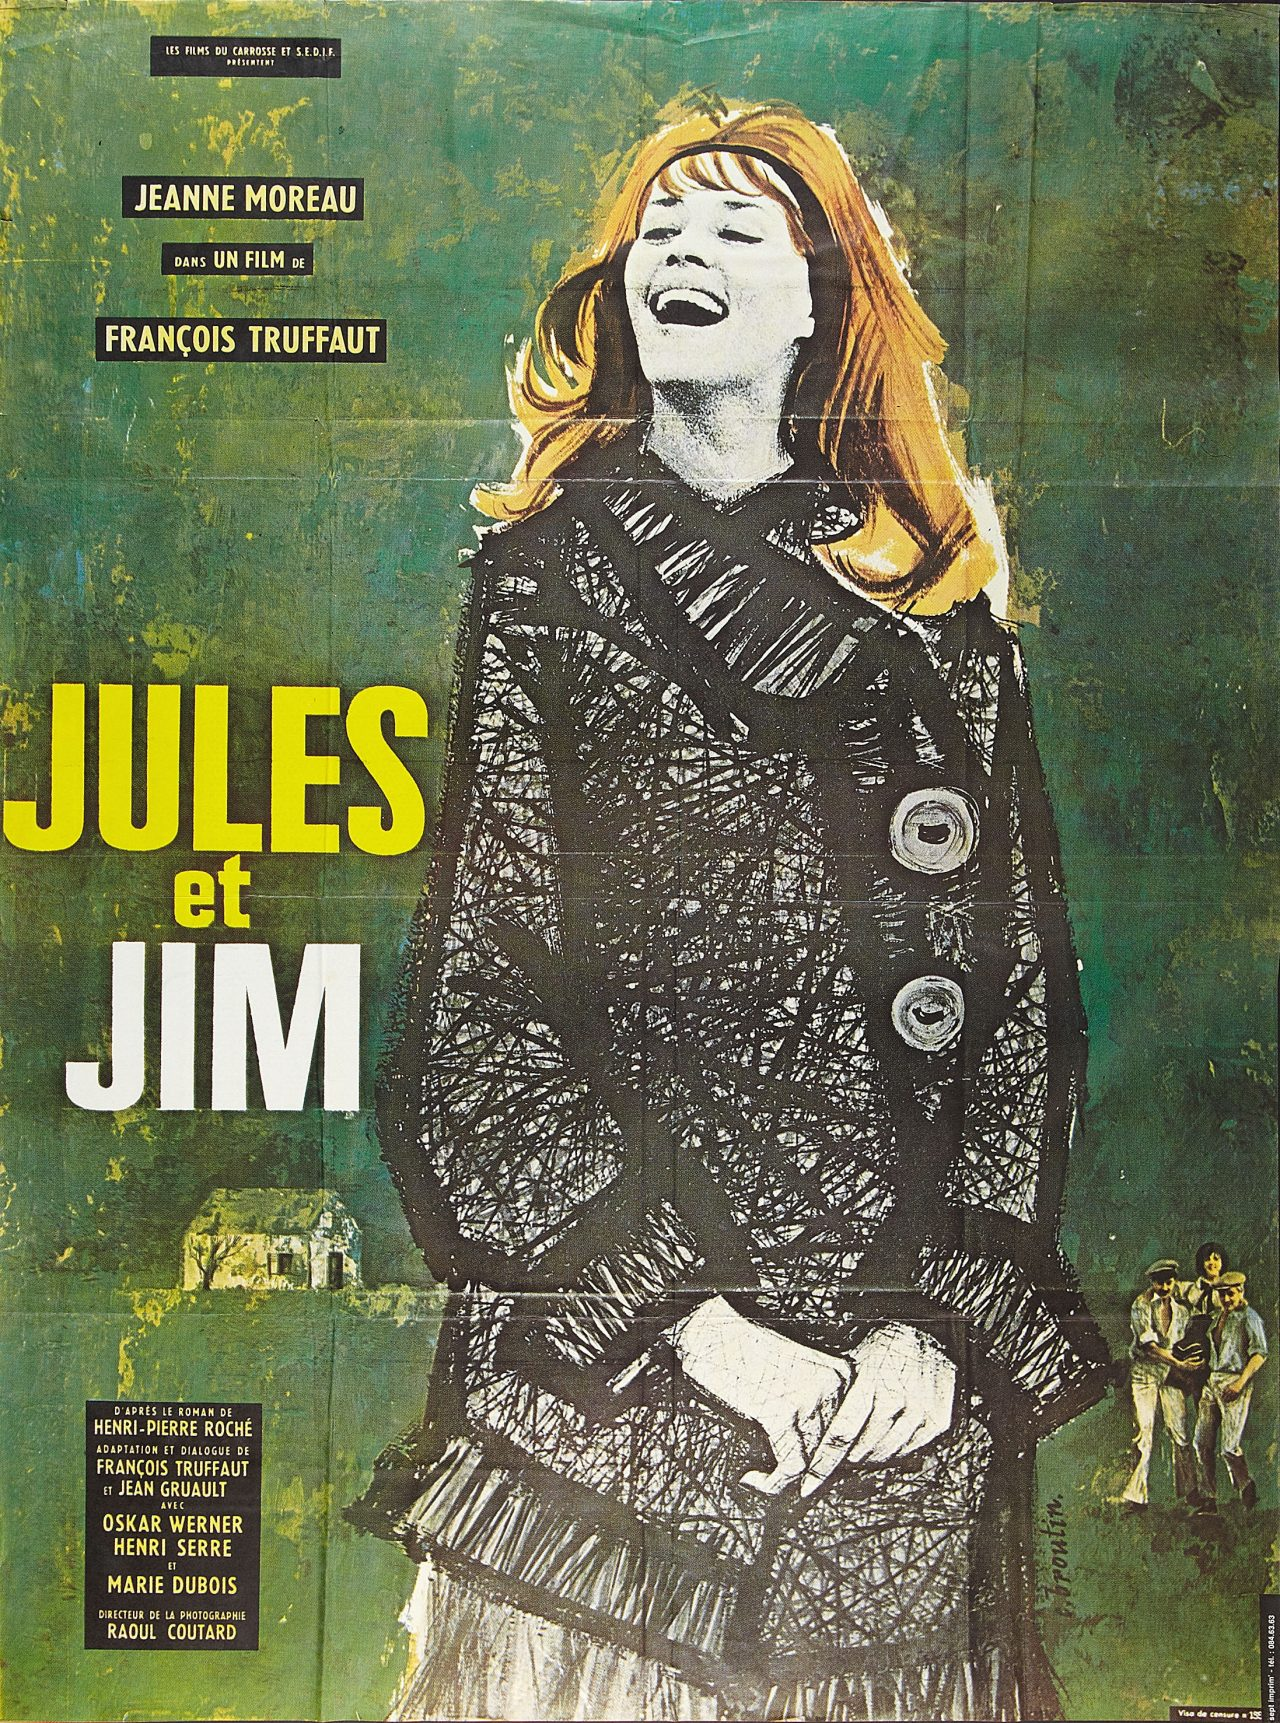 Poster of Jules et Jim directed by François Truffaut, 1962 c ...